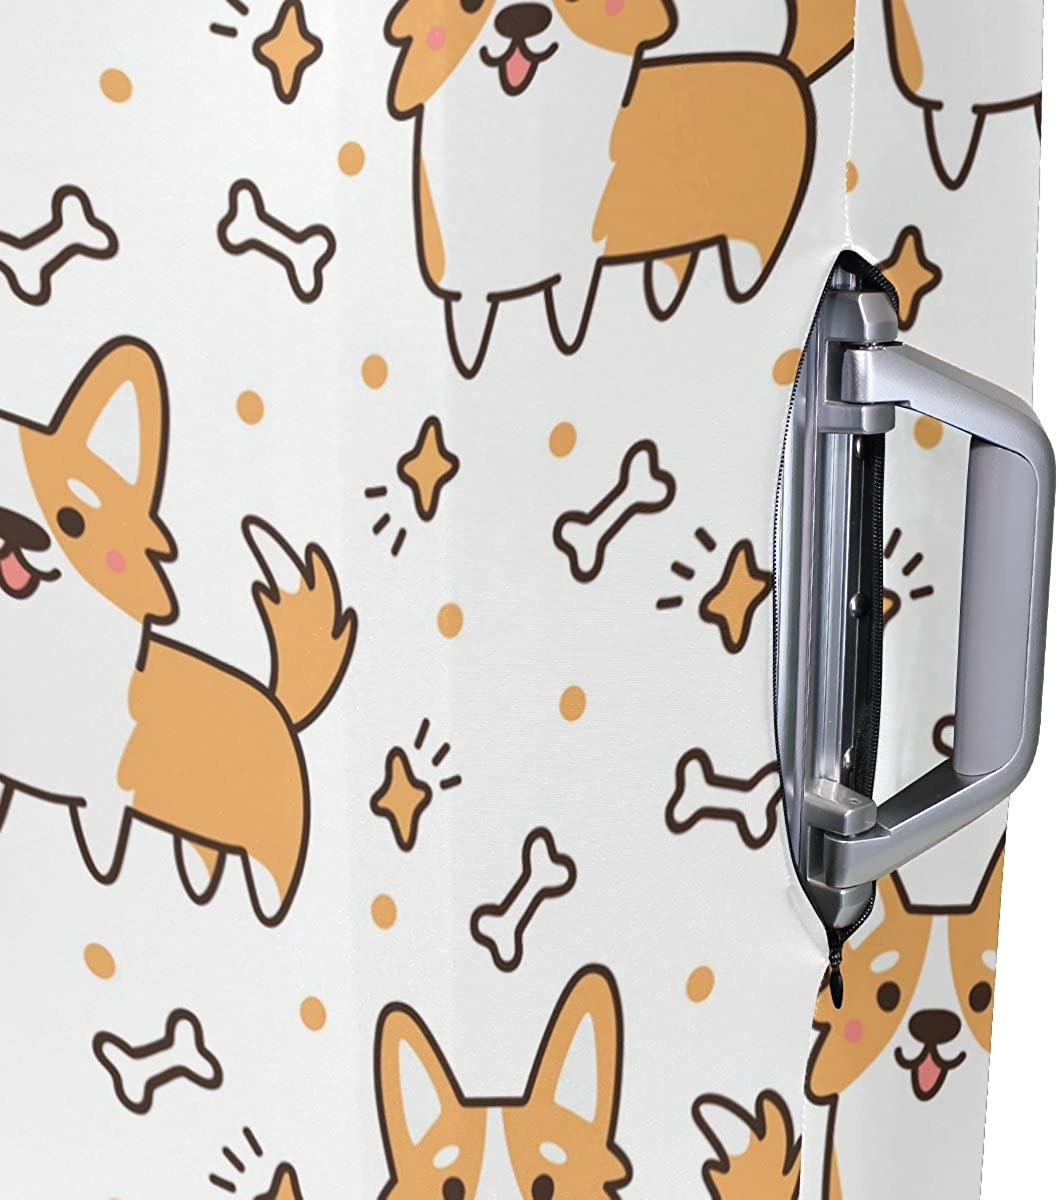 Elastic Travel Luggage Cover Cute Corgi Dogs Suitcase Protector for 18-20 Inch Luggage